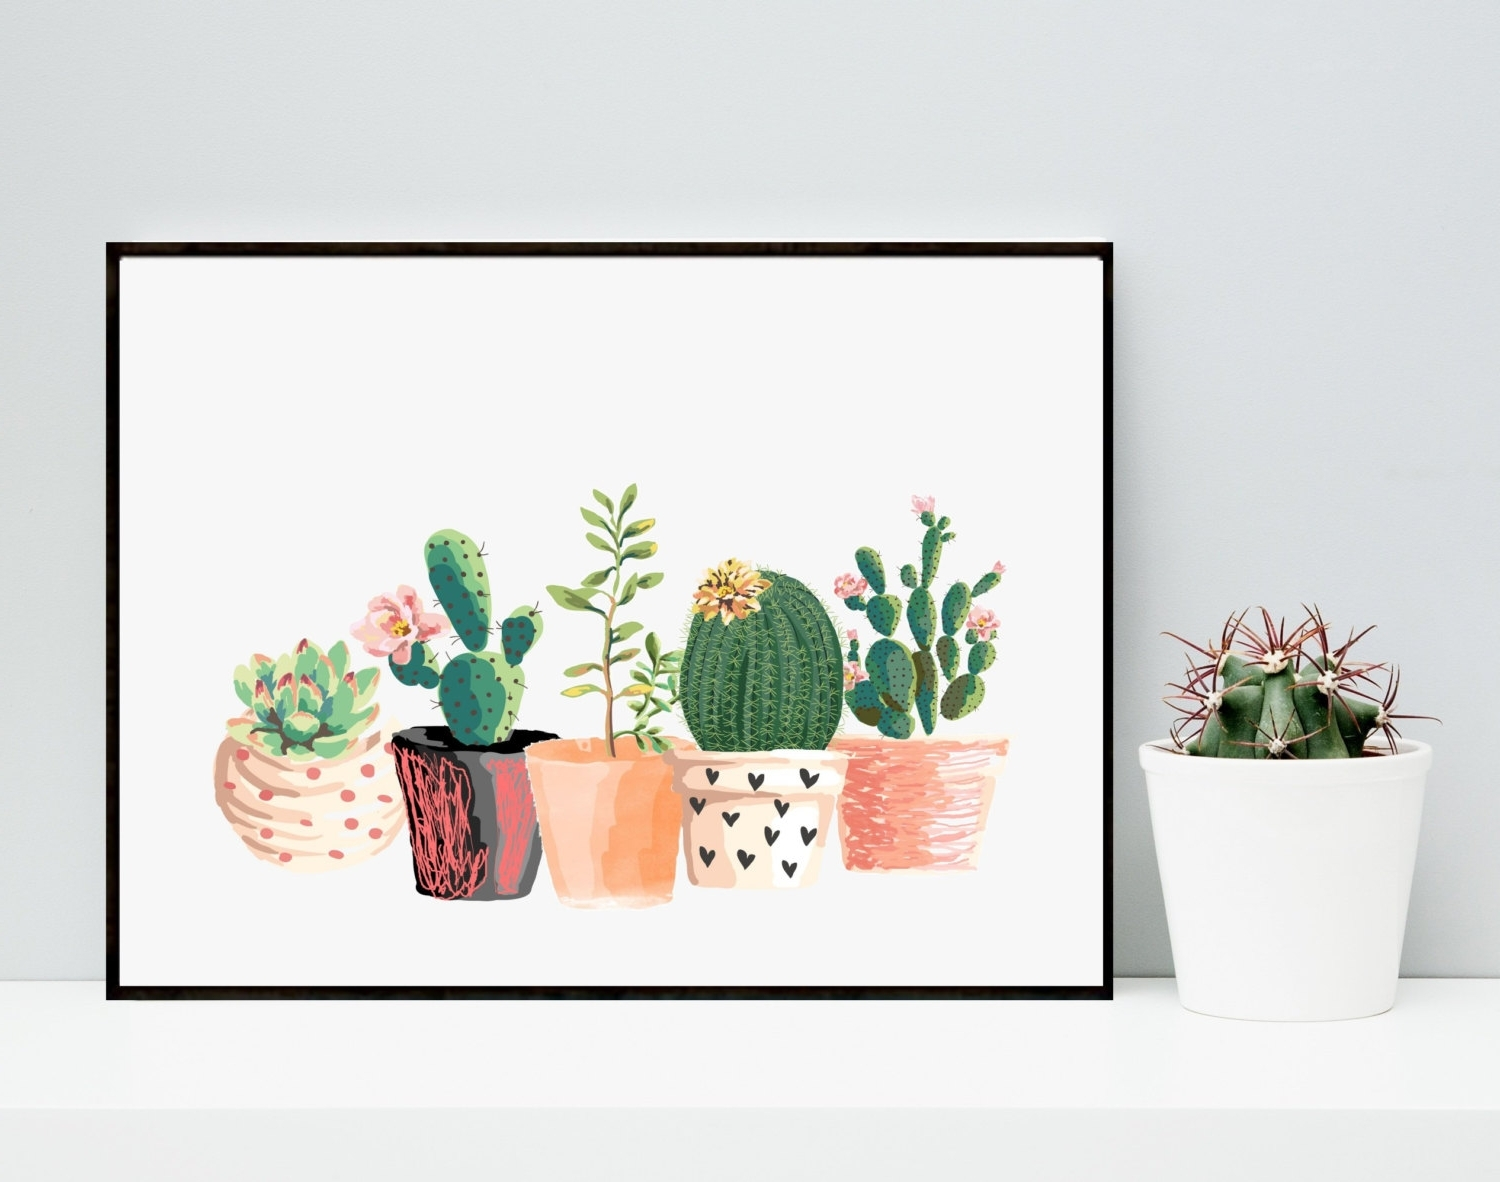 Cactus Wall Art With Regard To Well Known 35 Cactus Wall Art, Cactus Wall Art Wood Metal 80Cm – Swinkimorskie (View 10 of 15)